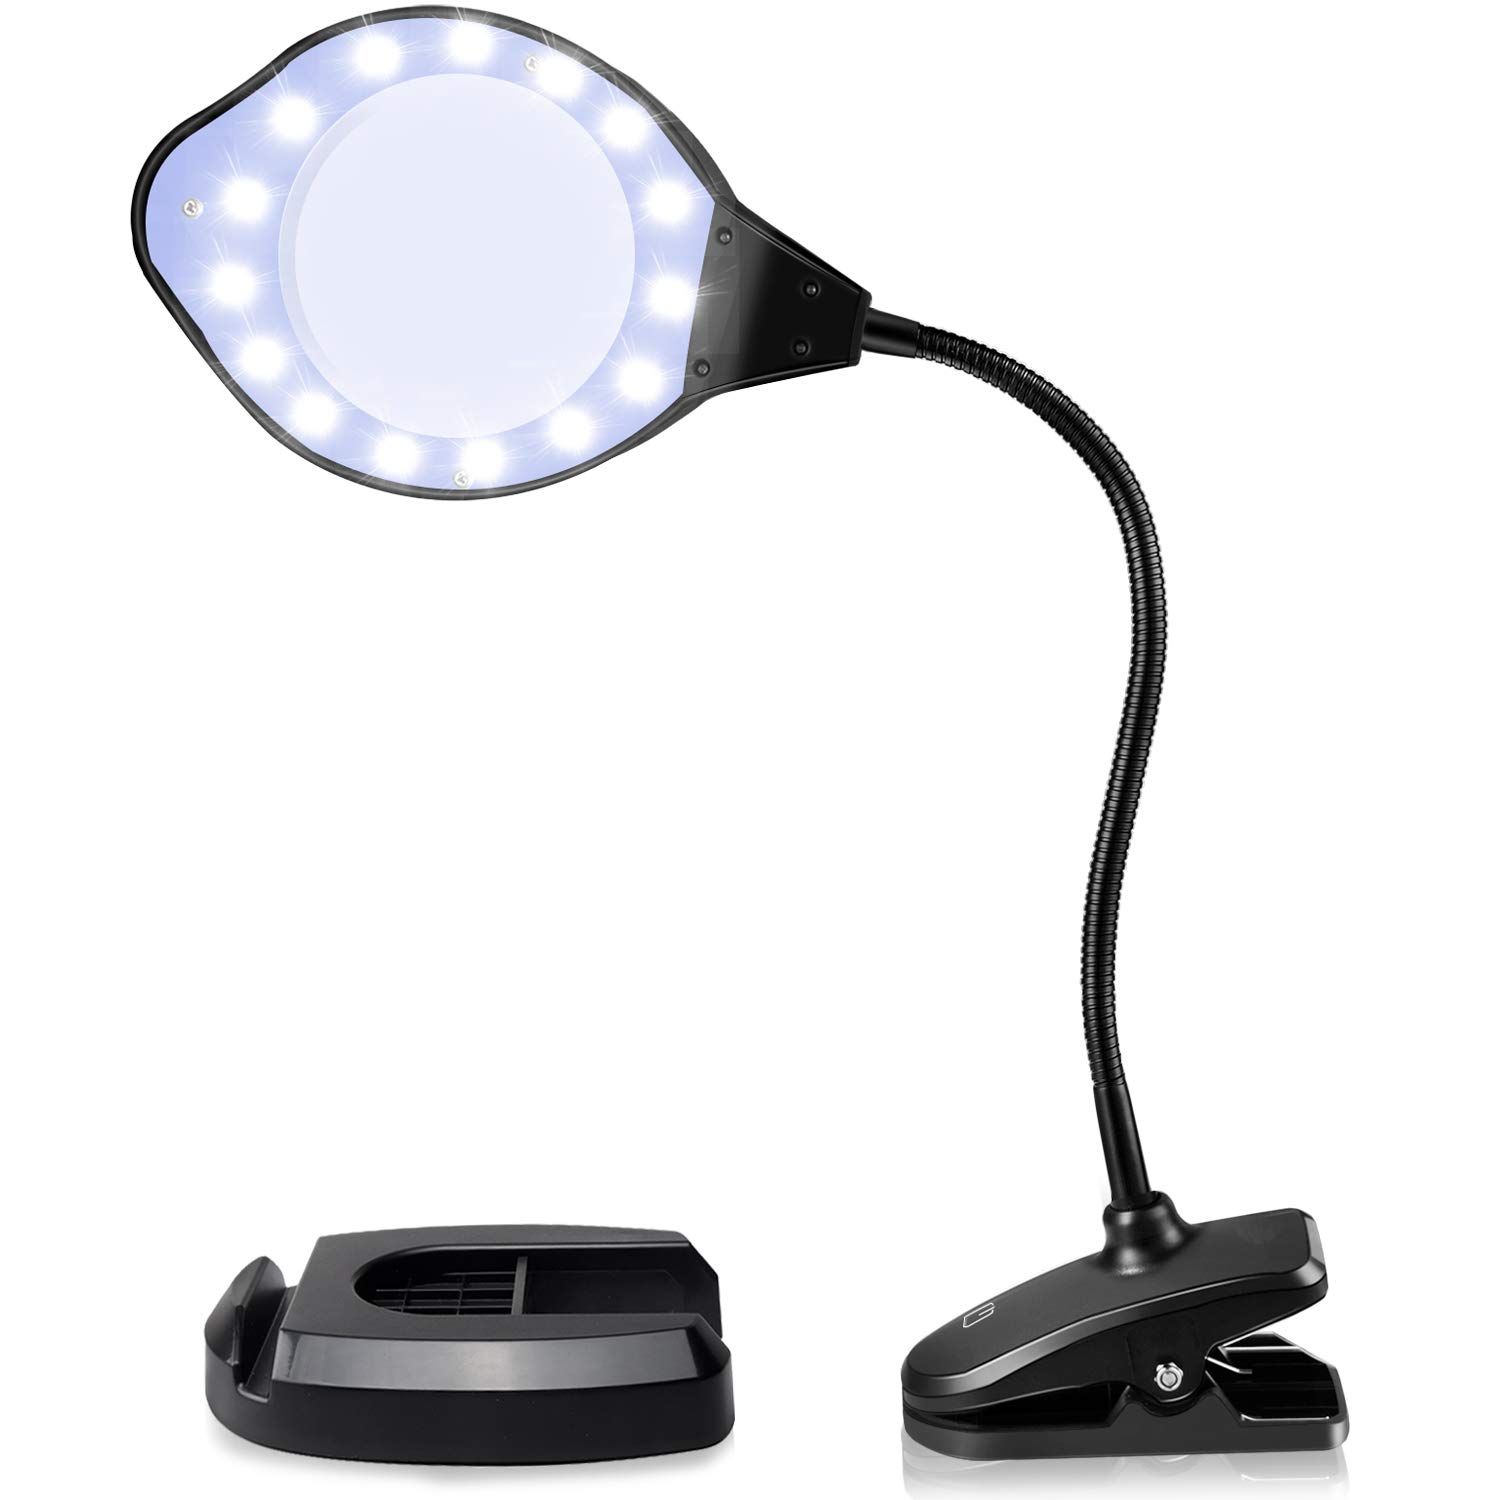 Joypea Magnifying Glass Lamp,2X-4X Magnifier LED Light with Clip and Flexible Neck,Magnifying Lamp USB Powered,Perfect for Reading,Hobbies,Task Crafts or Workbench- Black by Joypea